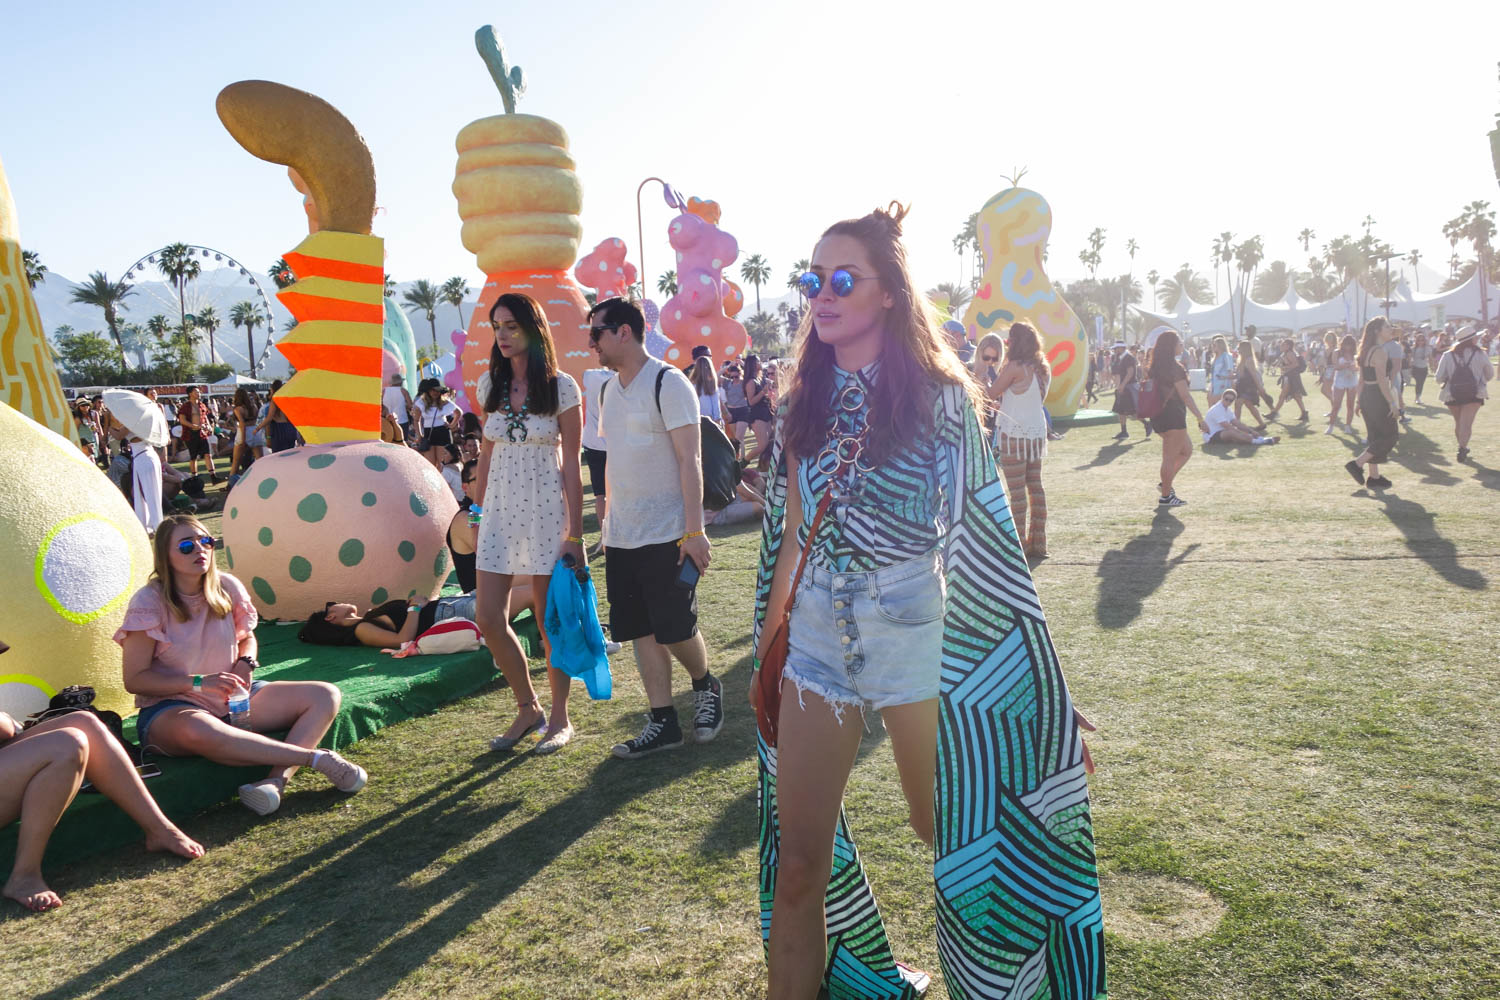 Coachella 2017 Weekend 1 festival fashion style seen on blogger model Xenia.Mz. Photos by Samuel Black